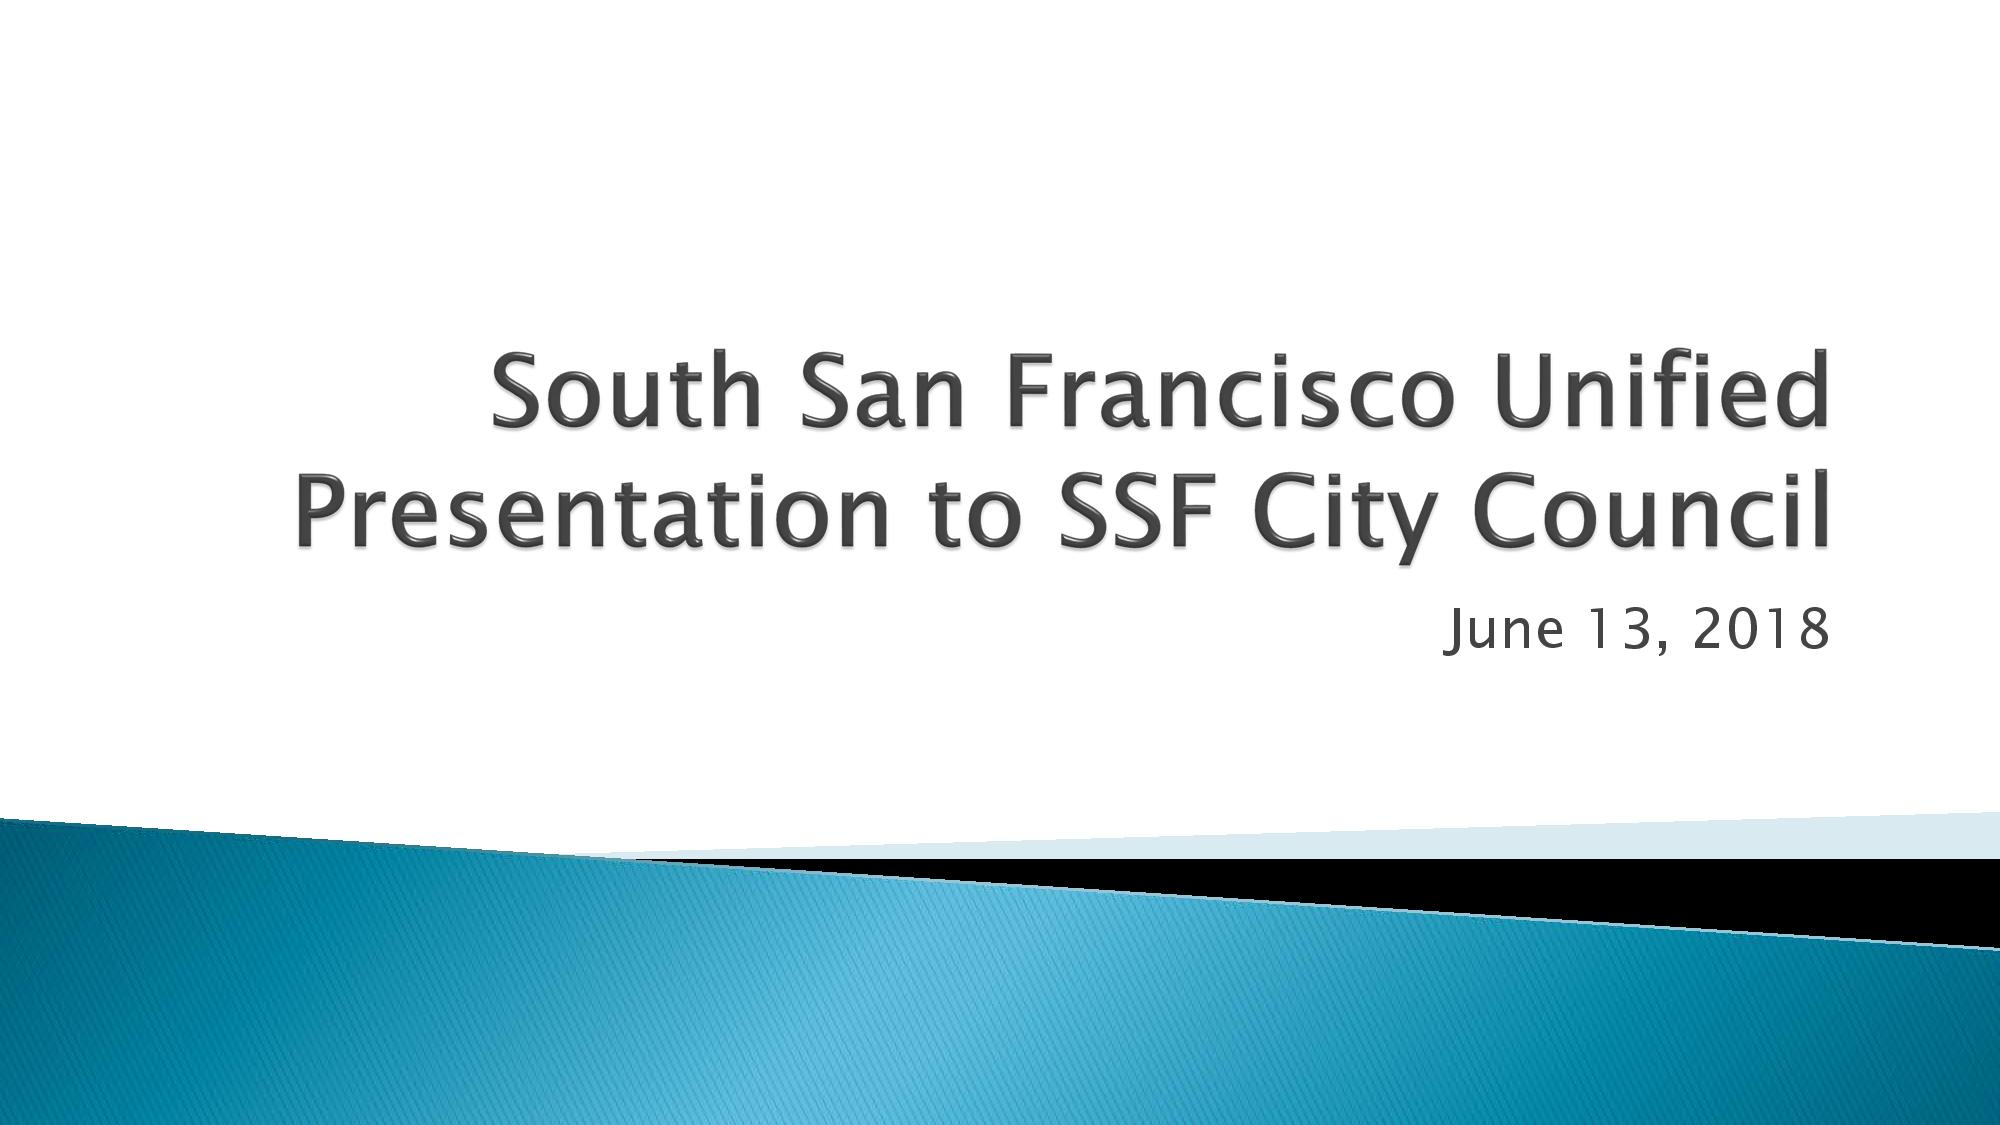 South San Francisco Unified School District To Present Updates To